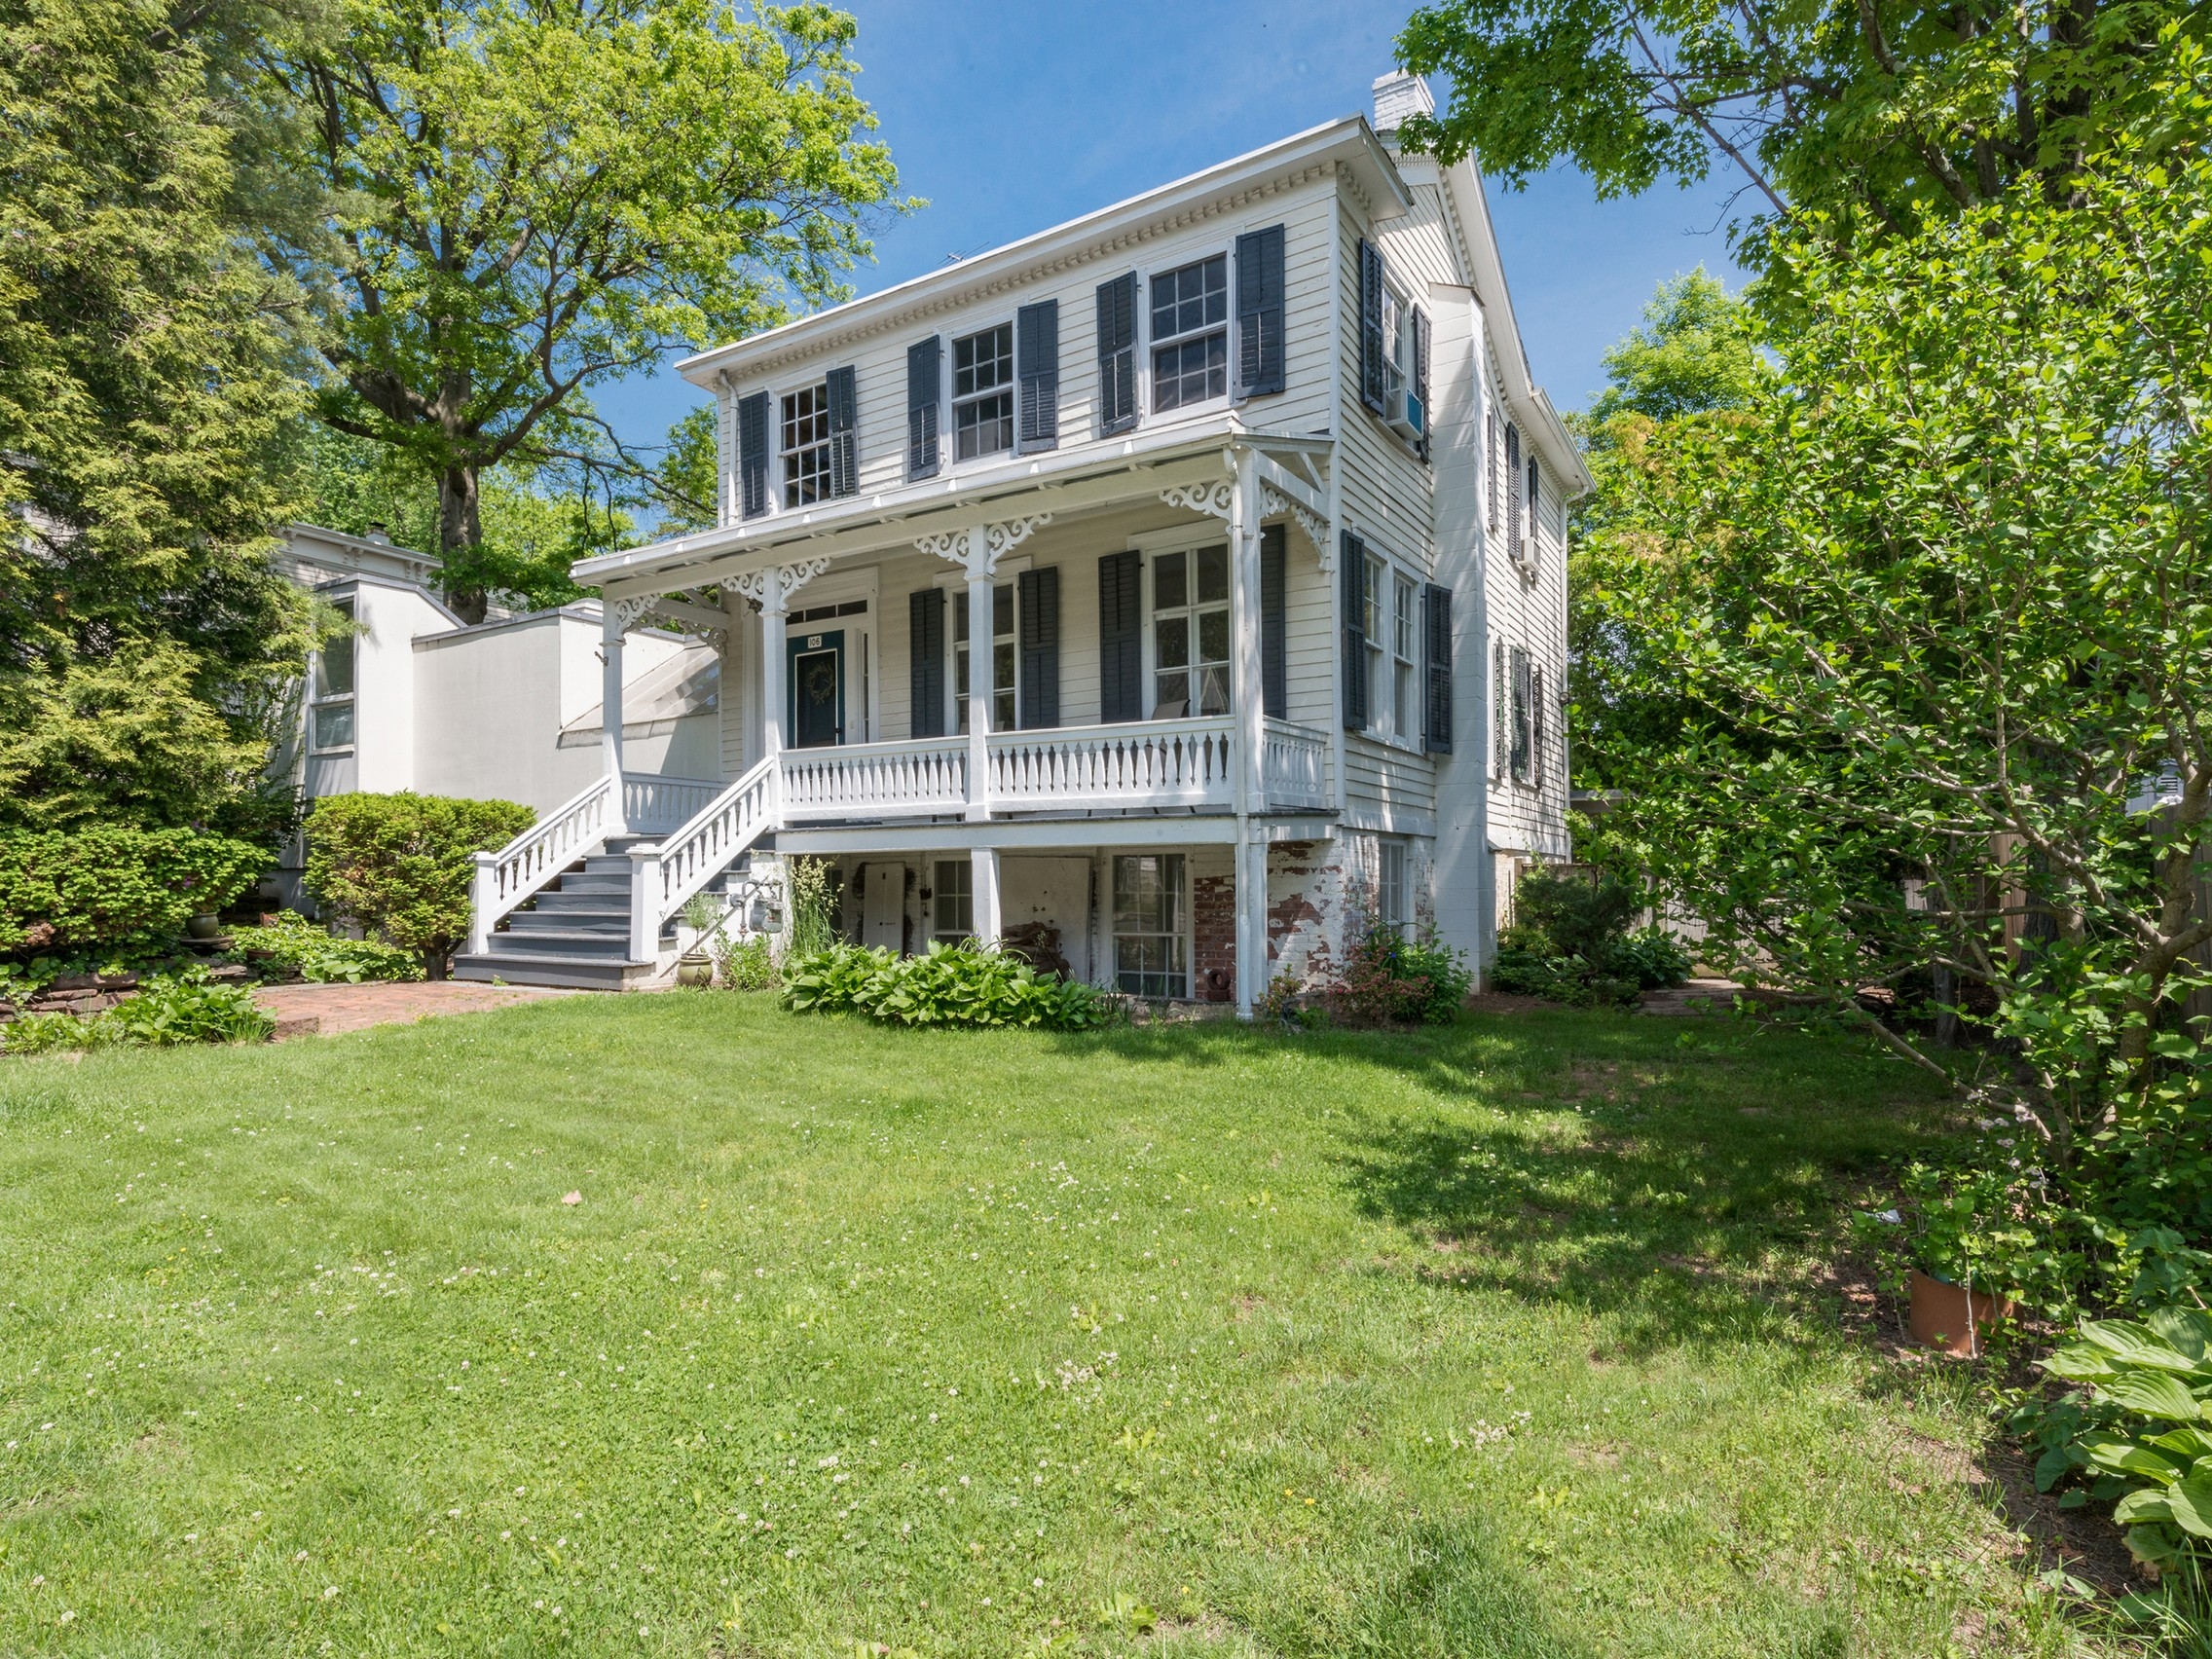 Single Family Home for Sale at Inviting Colonial Contemporary 106 Castle Heights Ave Upper Nyack, New York 10960 United States